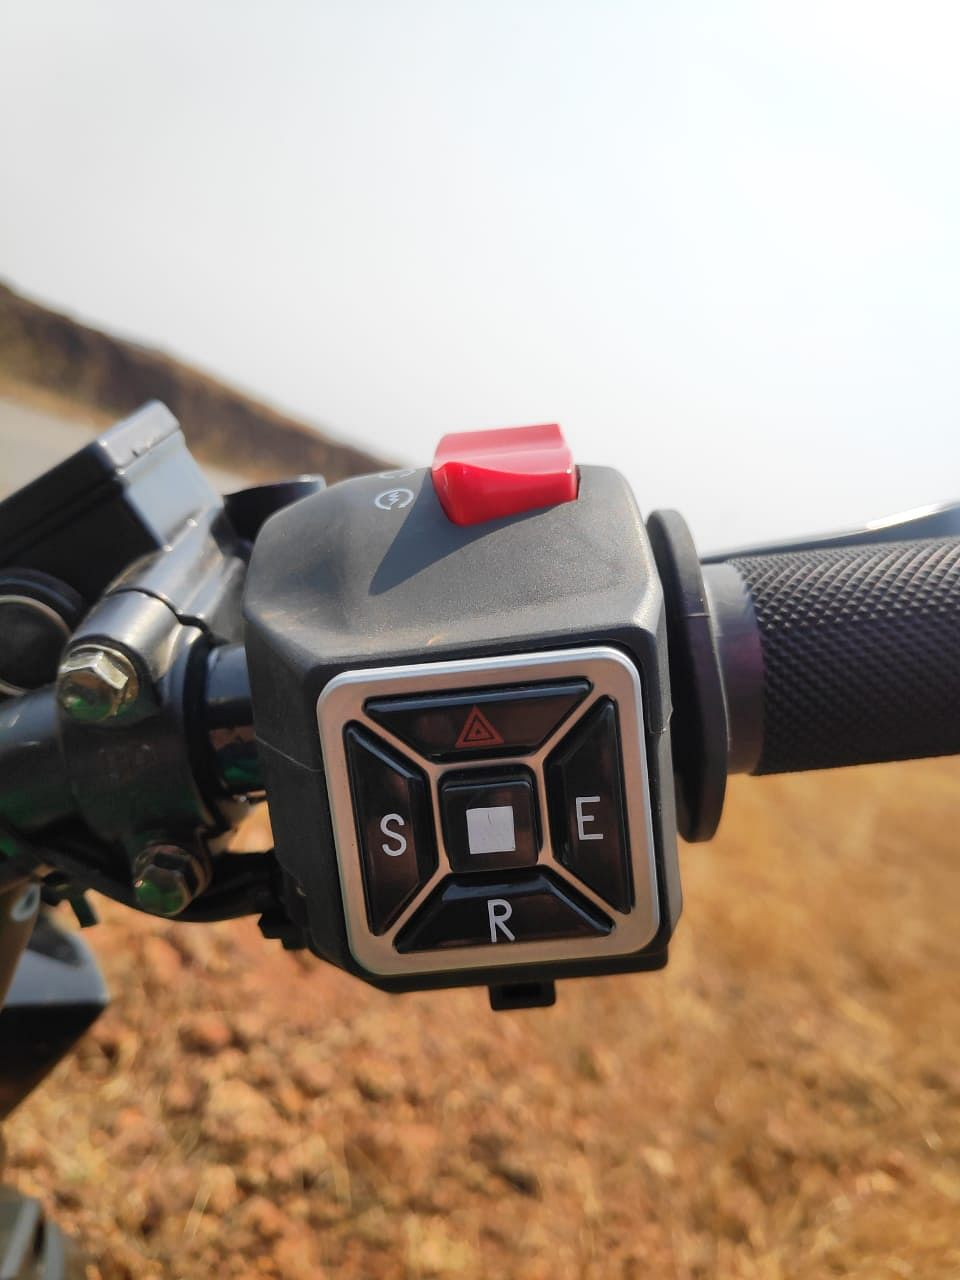 KM4000 switchgear for riding modes